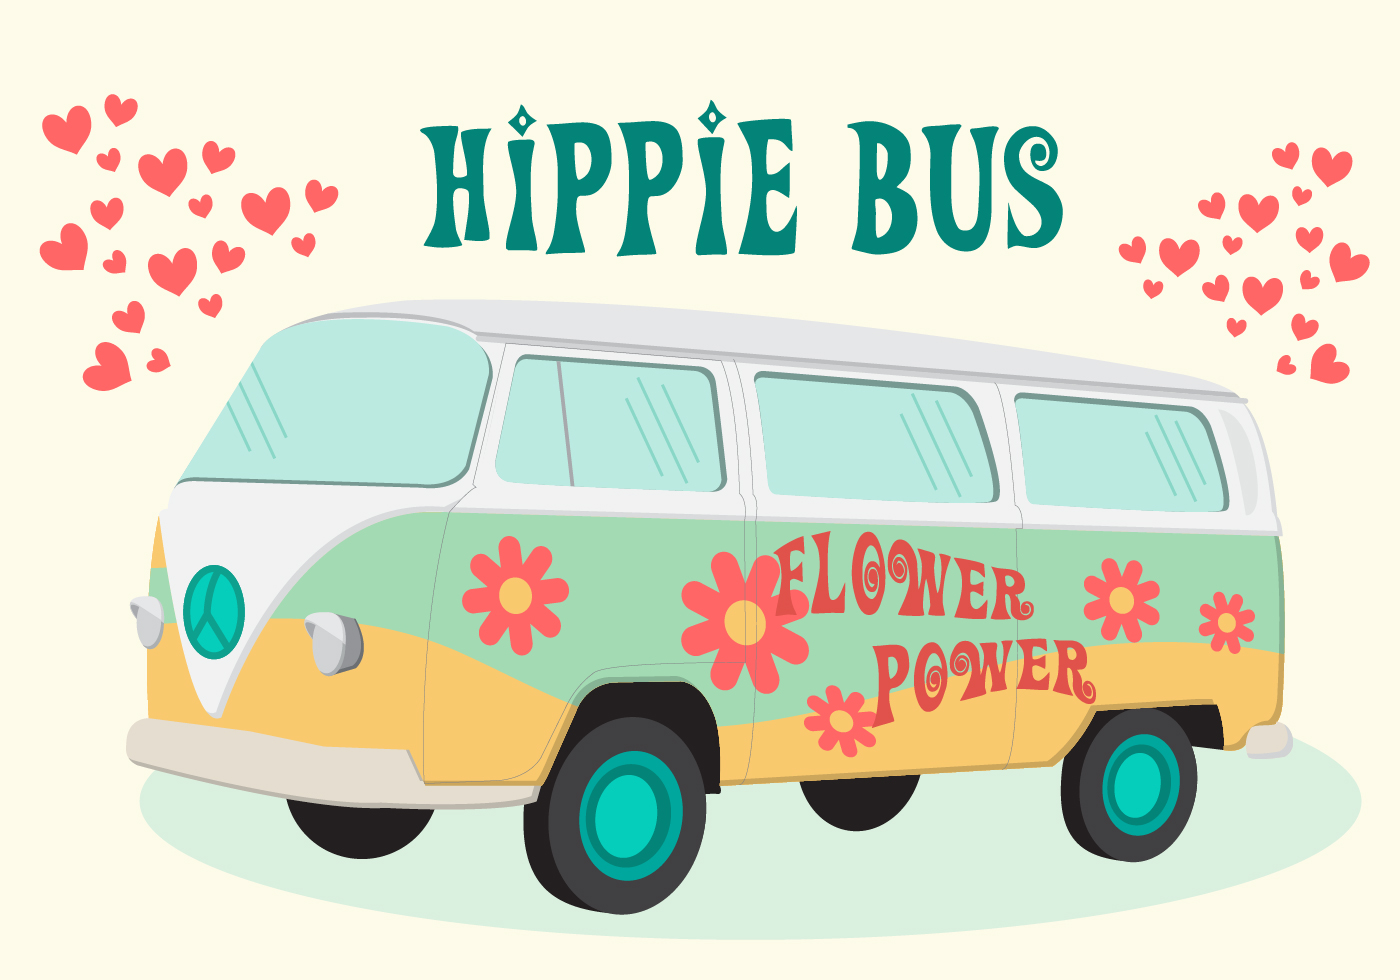 111494 Hippie Bus Vector further 3 together with 51b129 besides Silhouette Traced Tractor Vehicle 34355 also Ste unk Gears Horology Mike Savad. on flower vehicle graphics